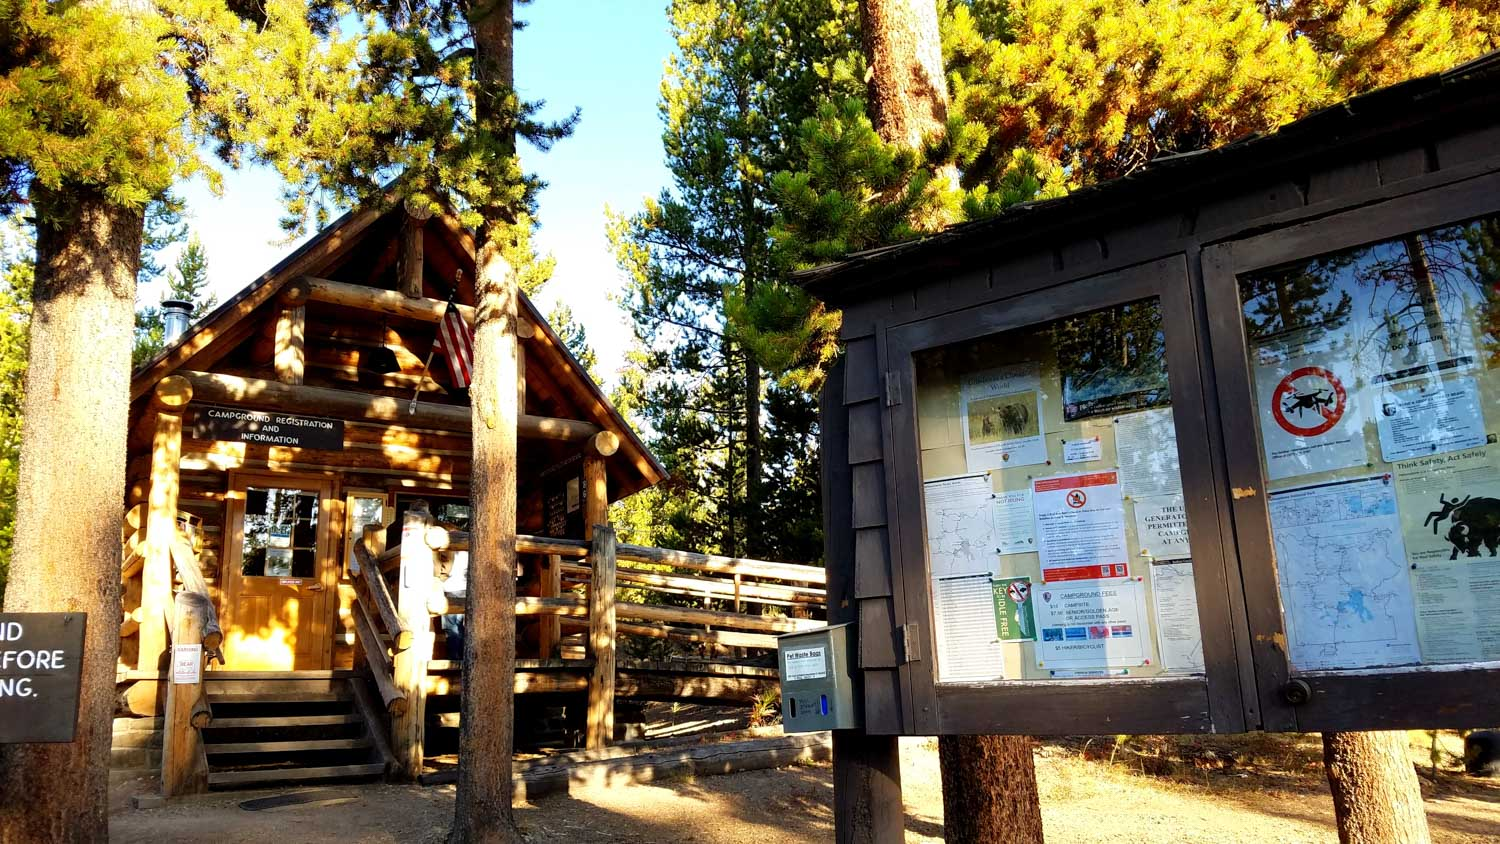 Indian Creek Campground visitor's center in yosemite national park